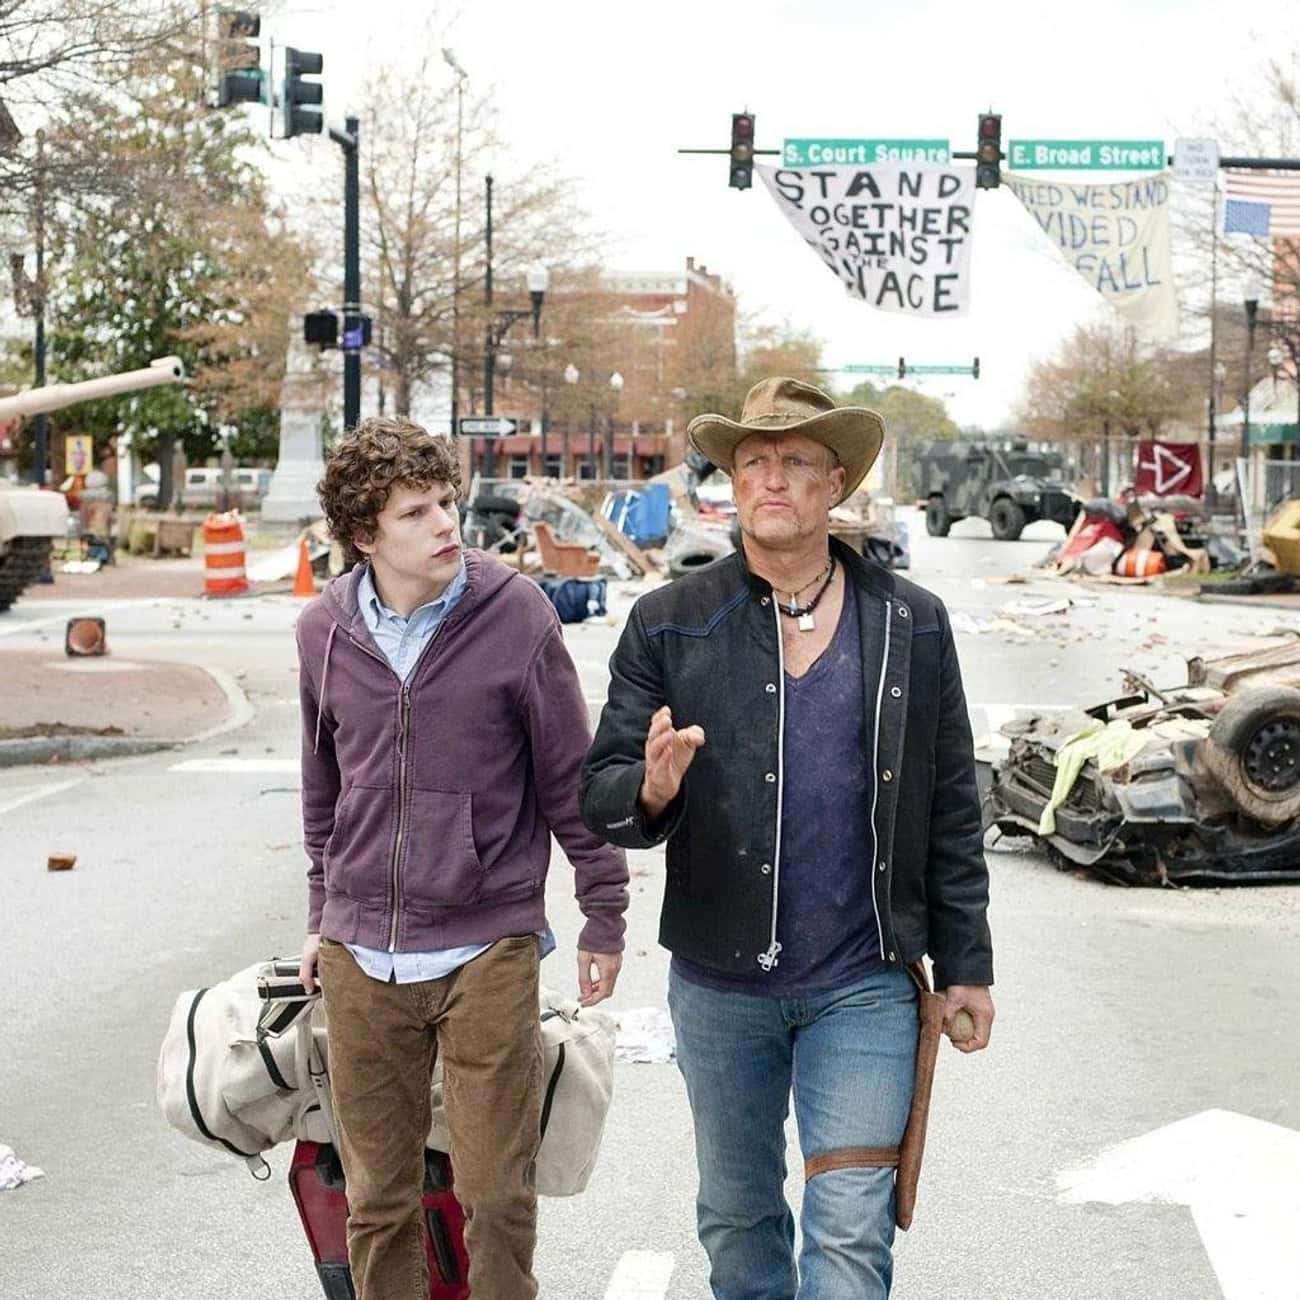 Wanna Stick Together? is listed (or ranked) 4 on the list The Most Hilarious 'Zombieland' Quotes